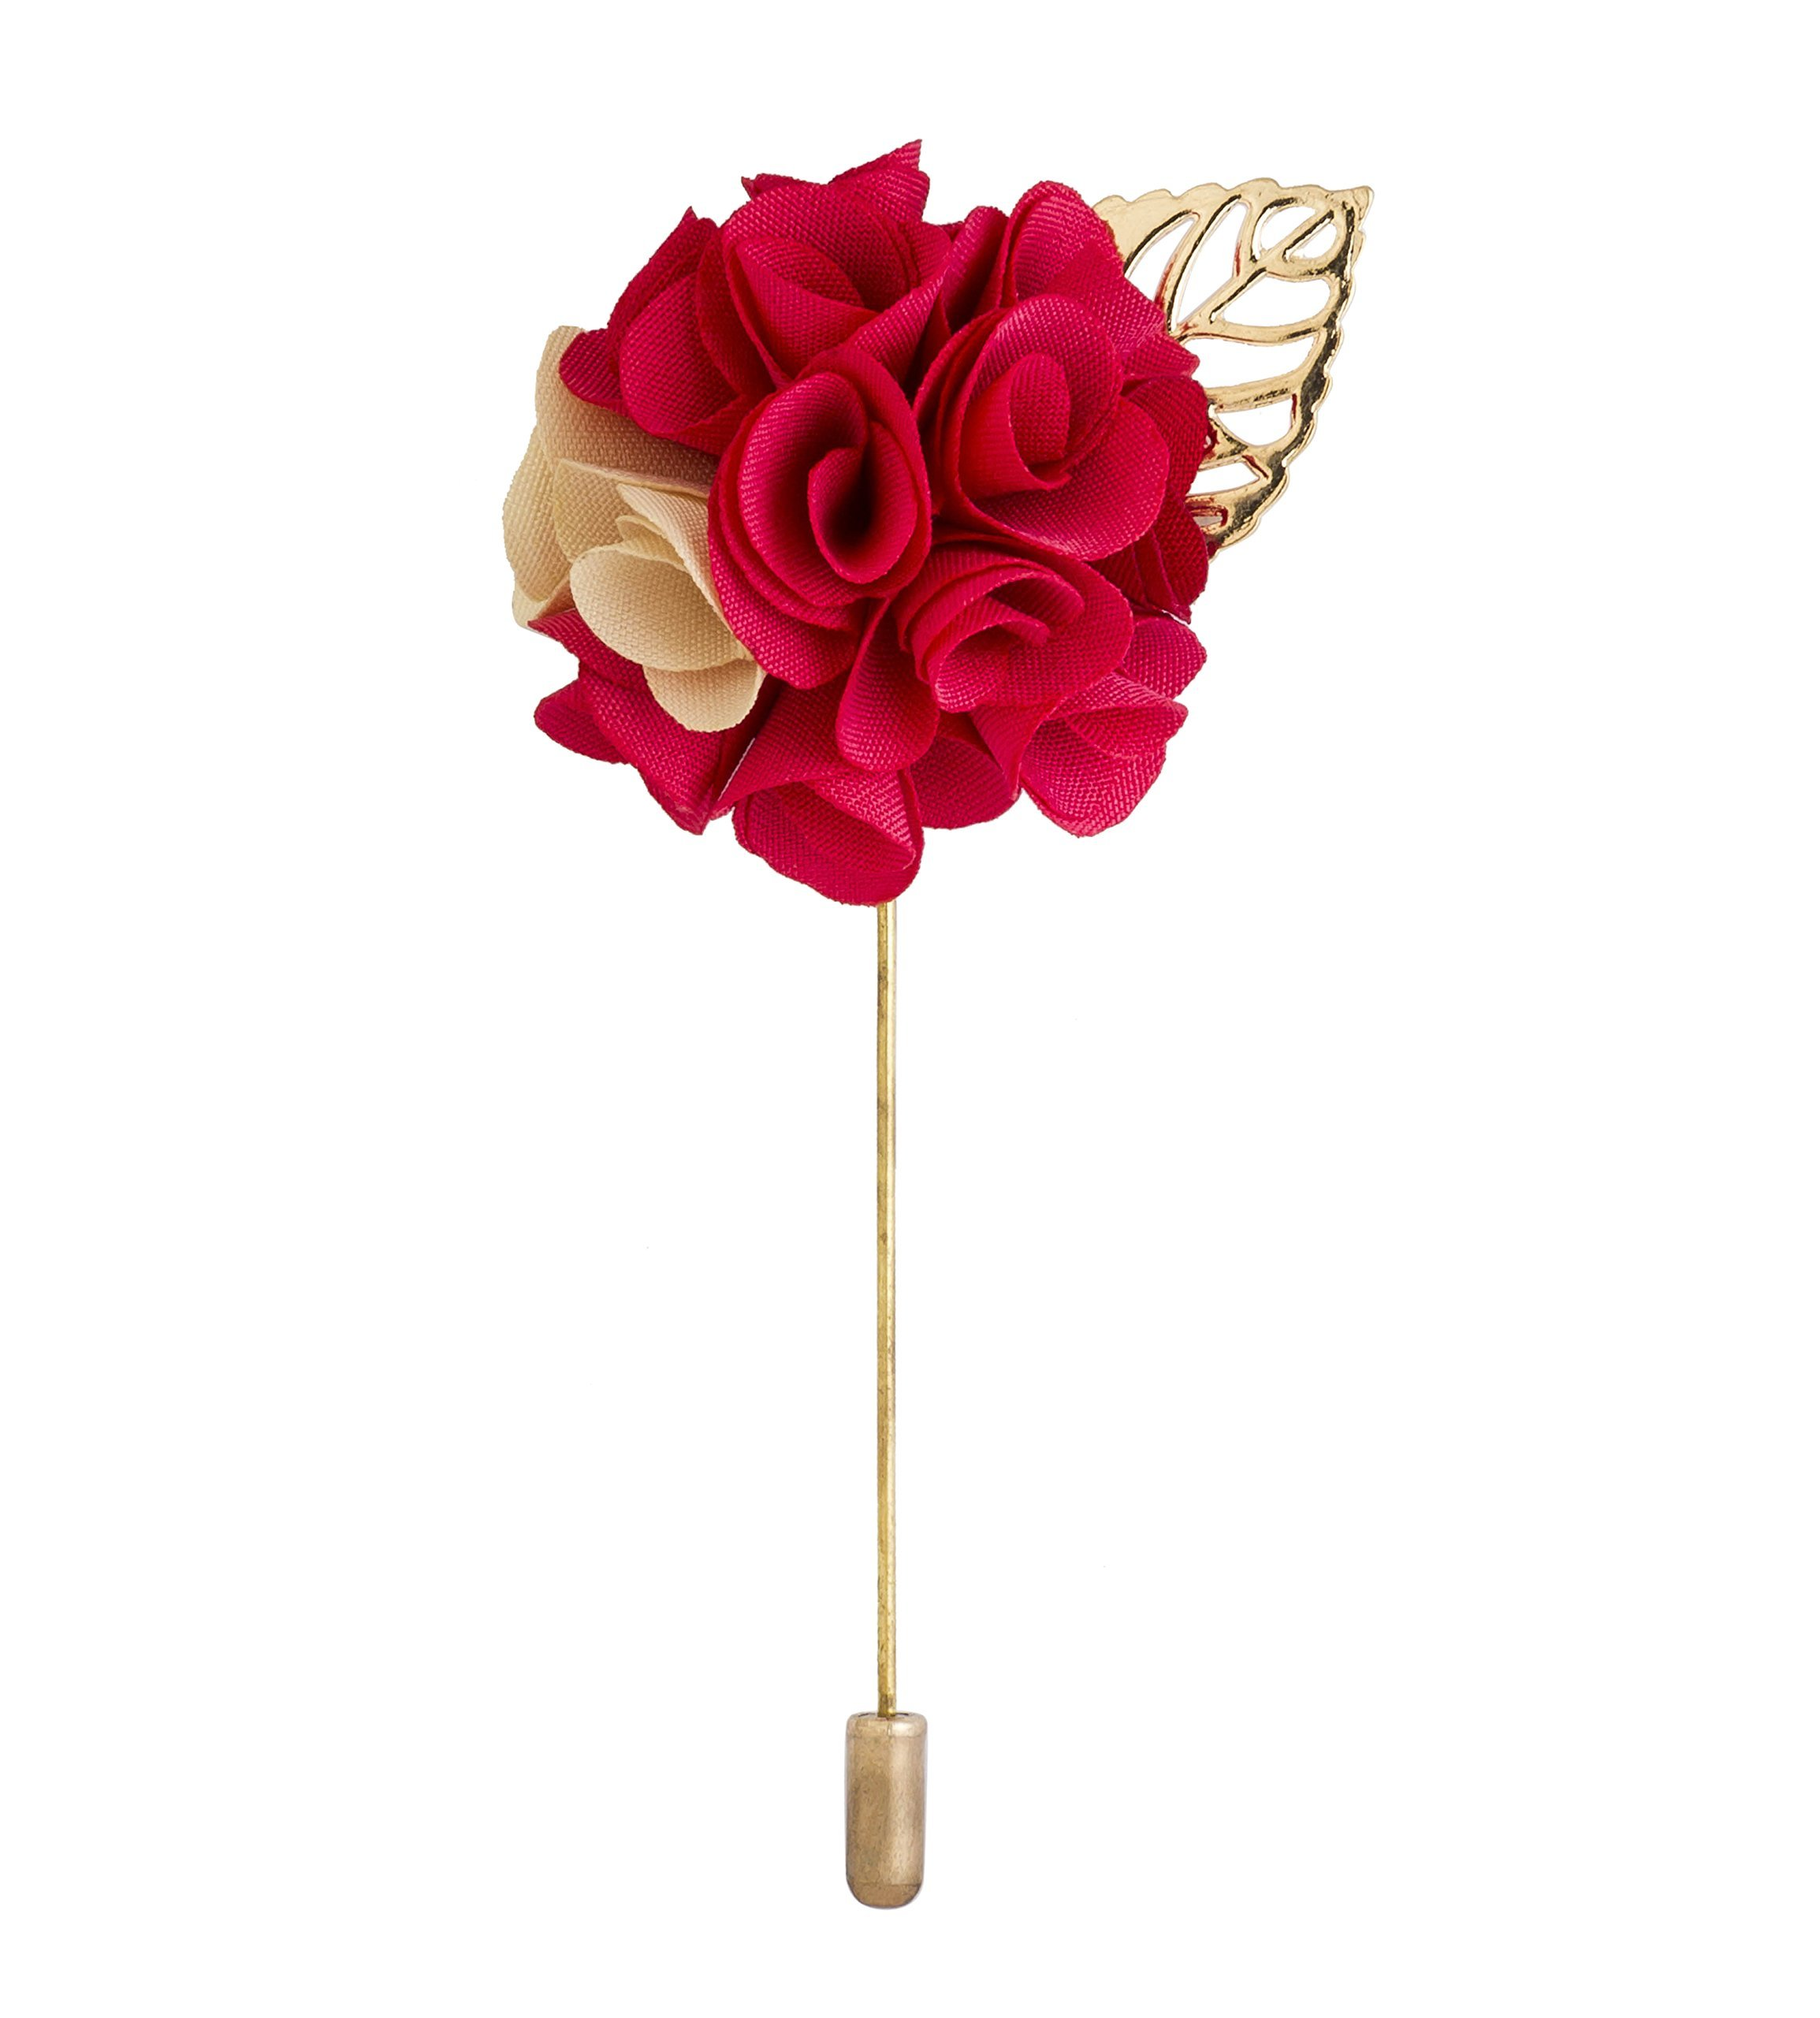 Knighthood Men's Bunch Flower With Golden Leaf Lapel Pin For Suit (Bright Pink & White)